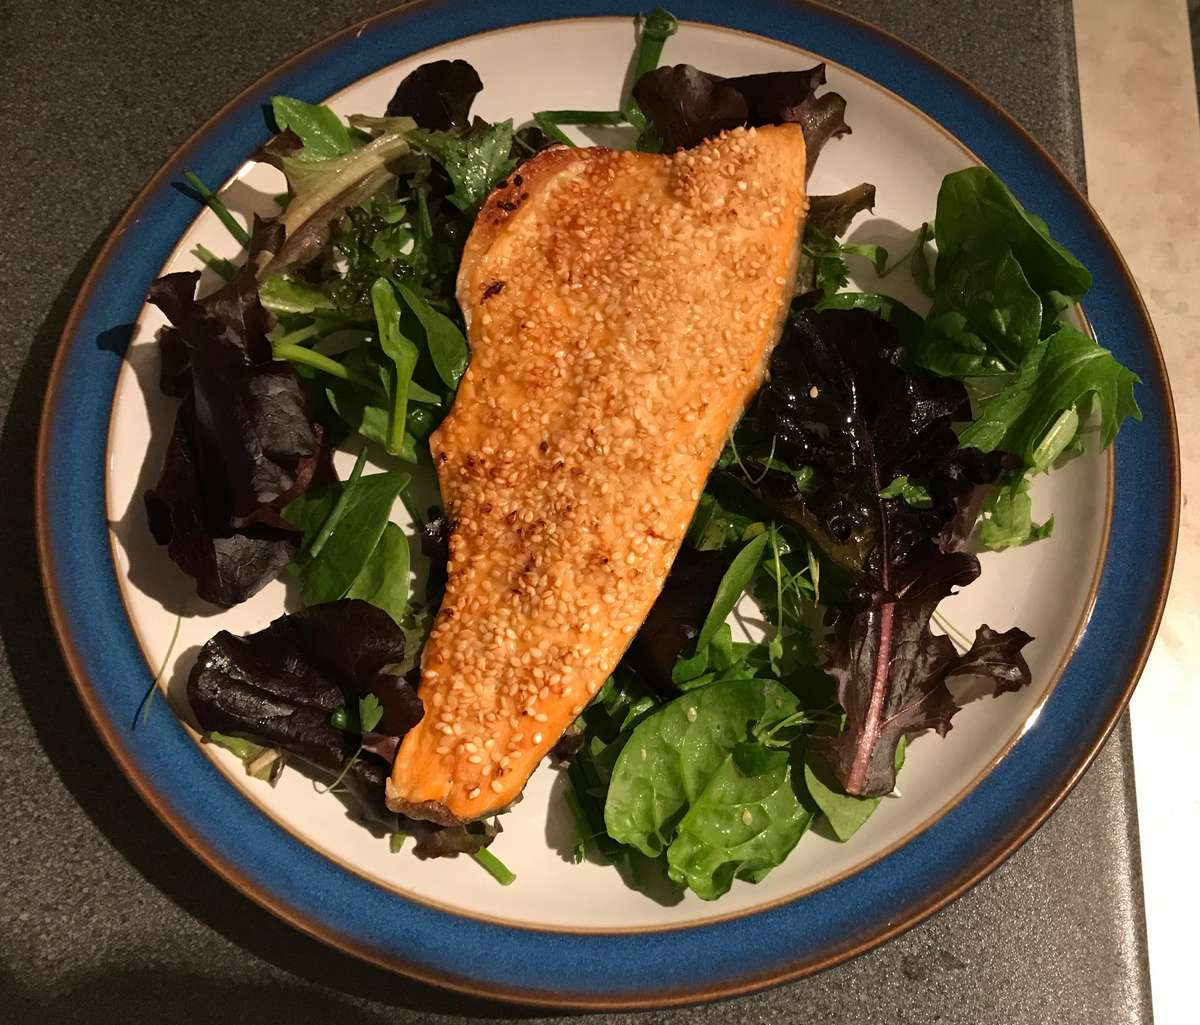 Sesame Trout served on a bed of herb salad leaves Should you become a pescatarian?